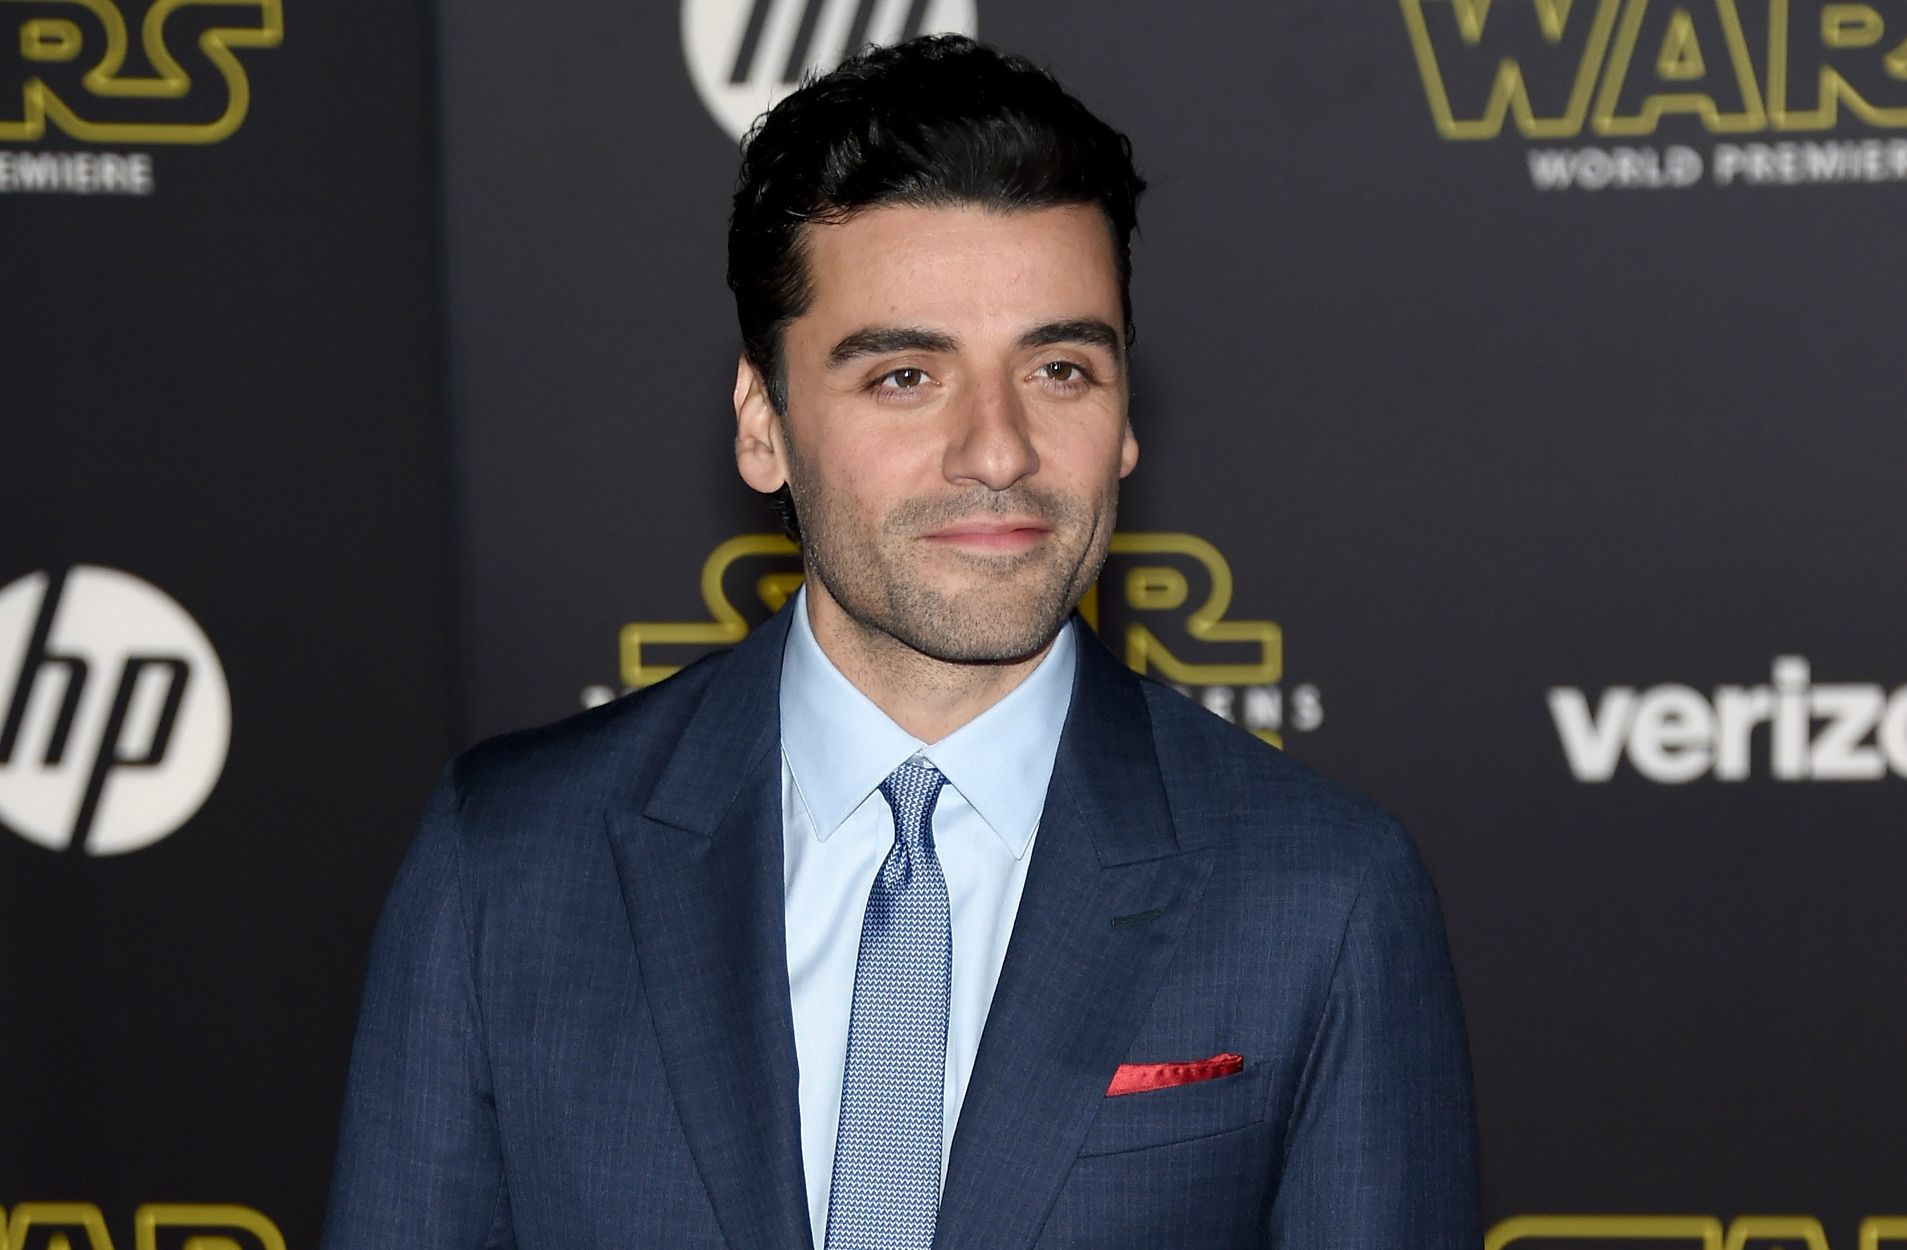 Oscar Isaac at Star Wars premiere